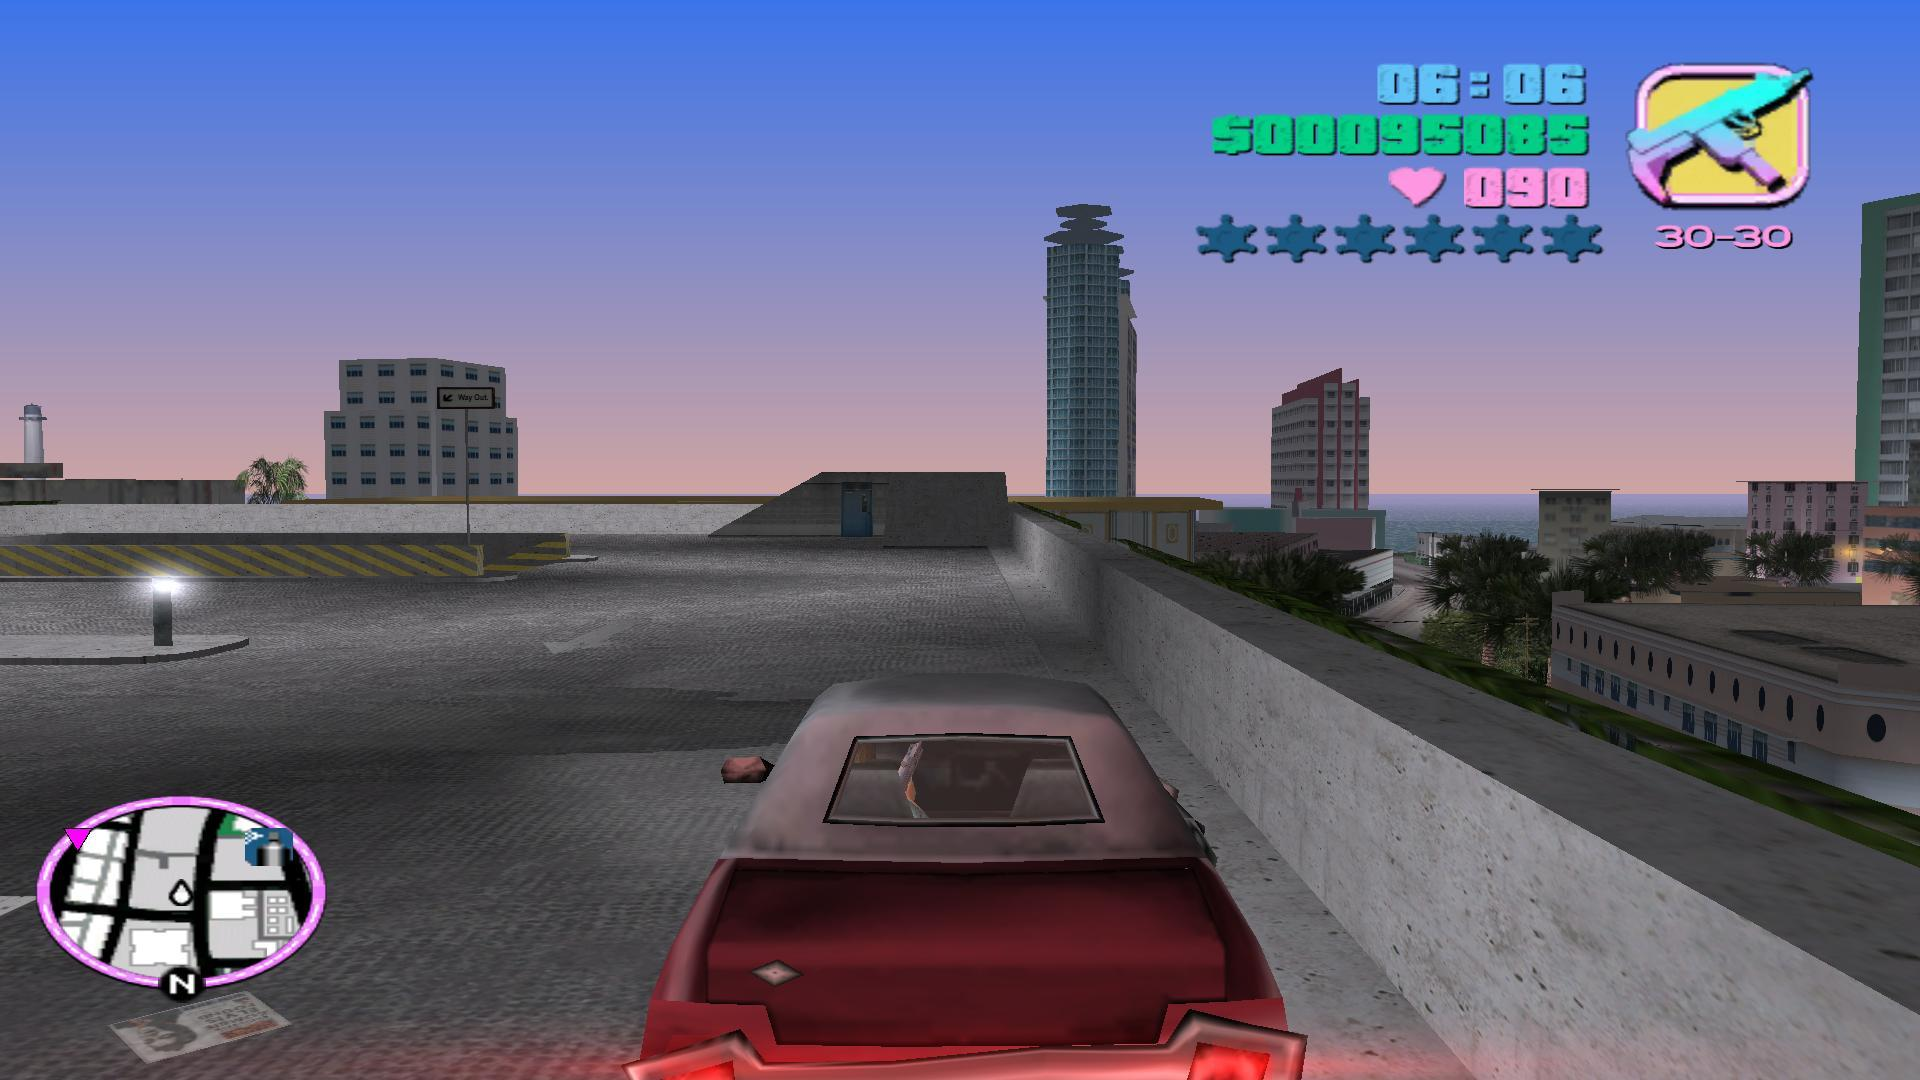 Grand Theft Auto: Vice City unique jumps location guide | GamesRadar+